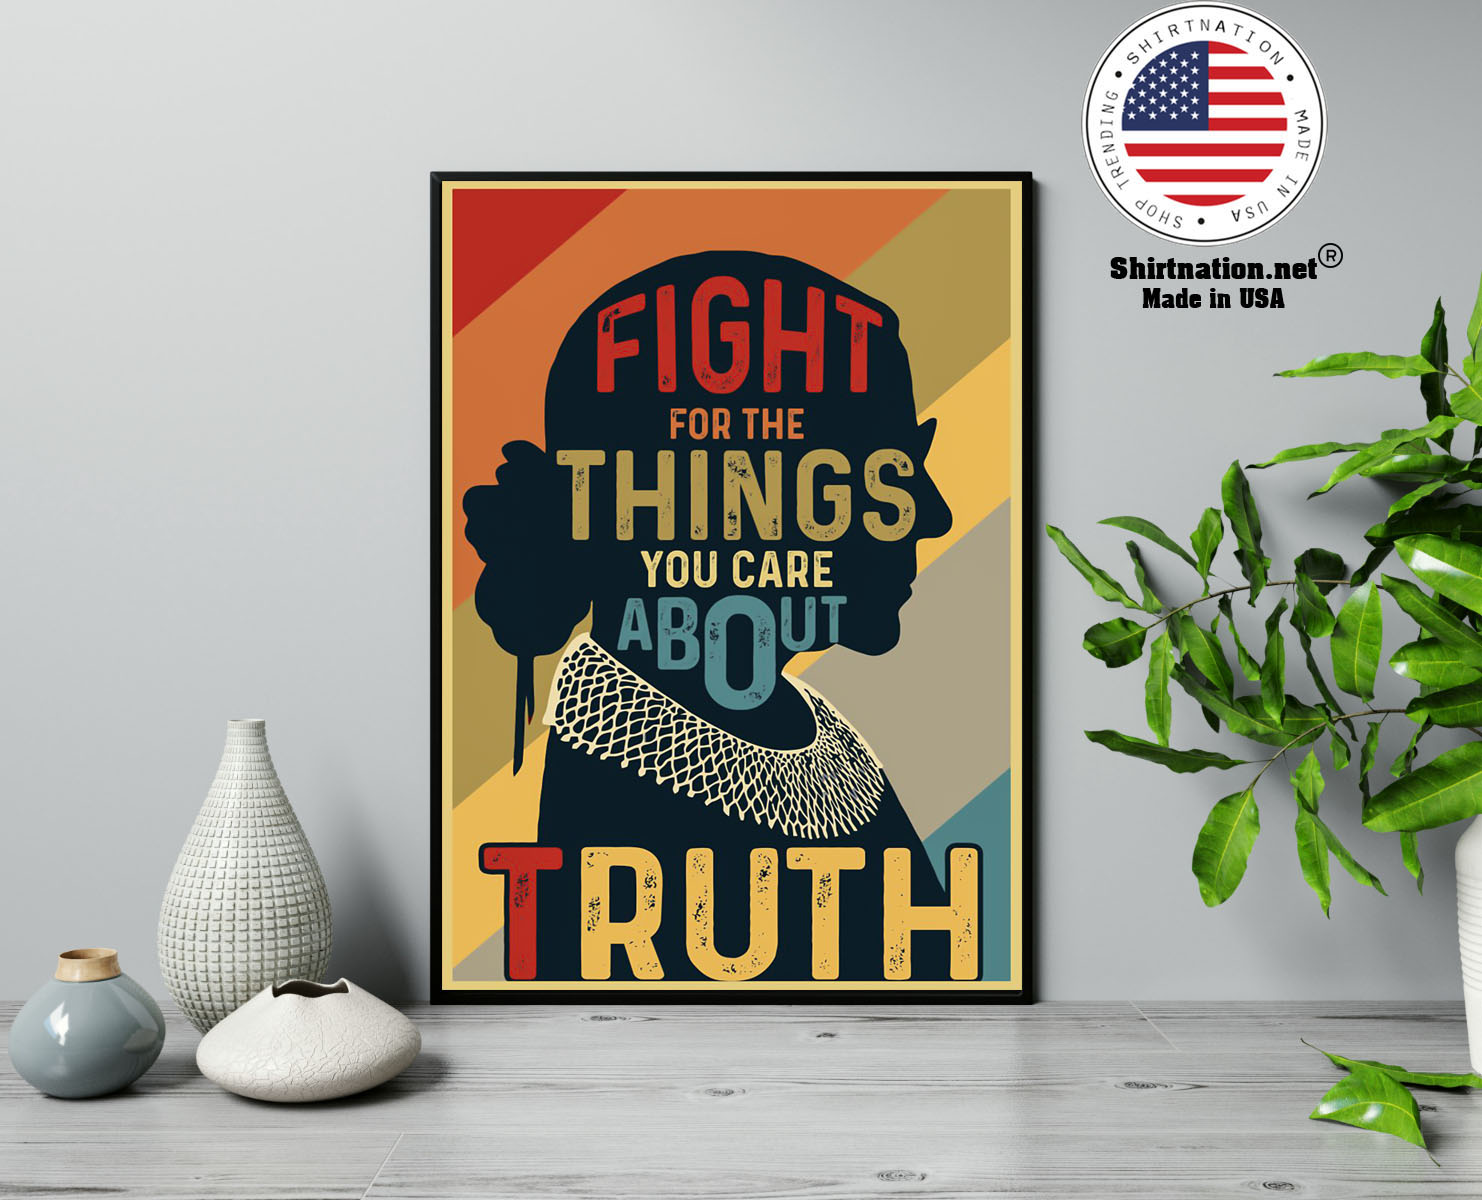 Ruth Fight for the things you care about truth poster 13 1